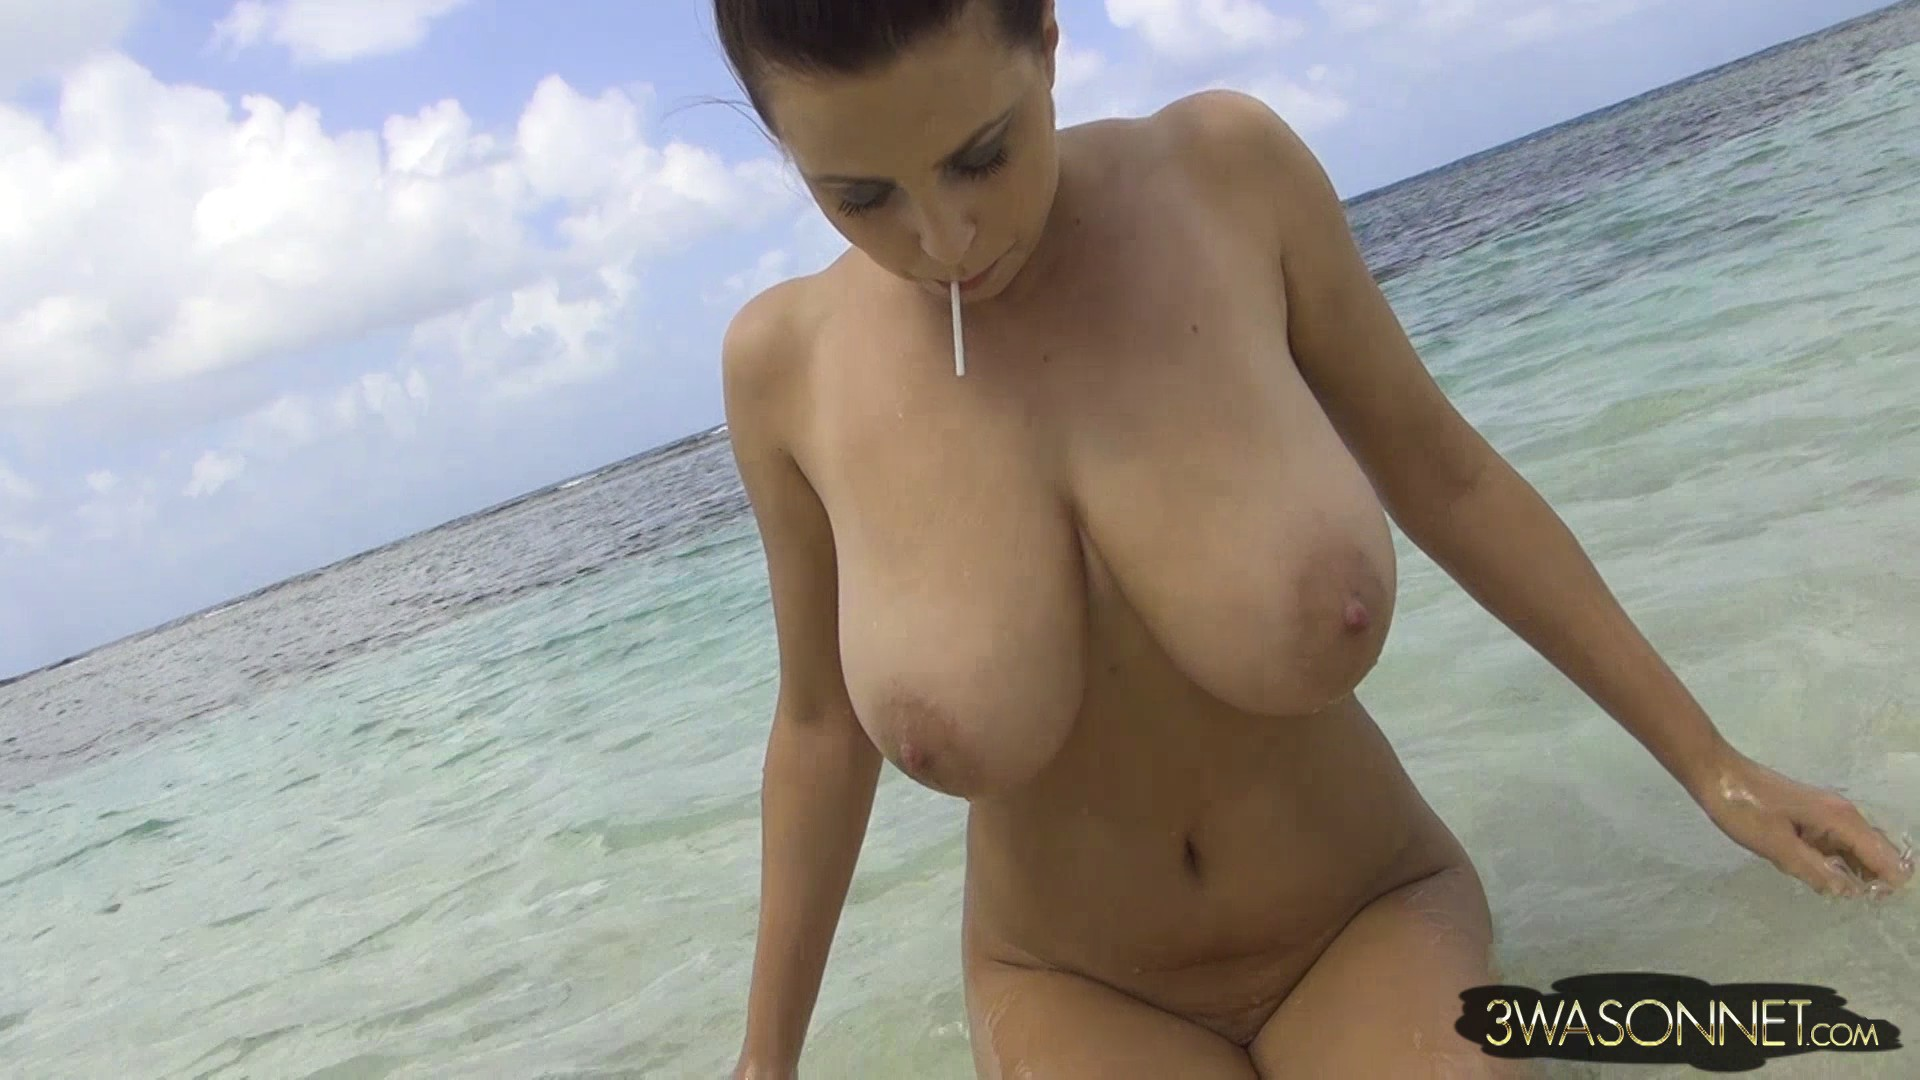 Katie thornton boobs fun